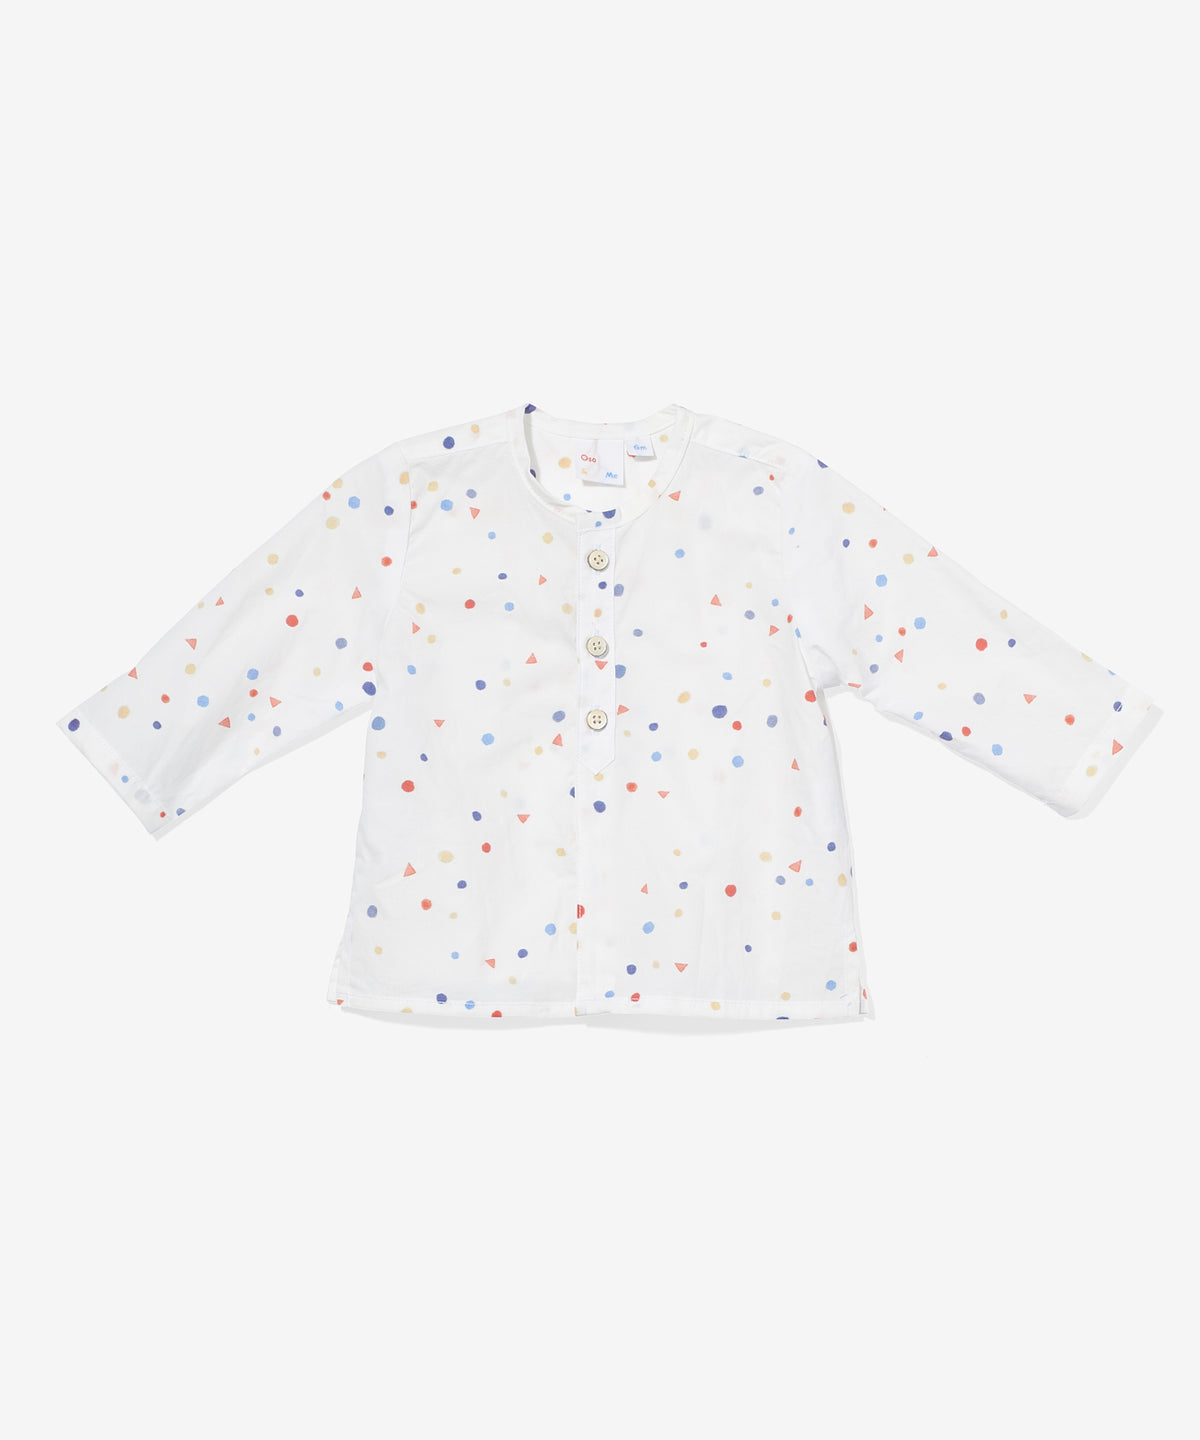 Lupo Baby Shirt, Signature Dot